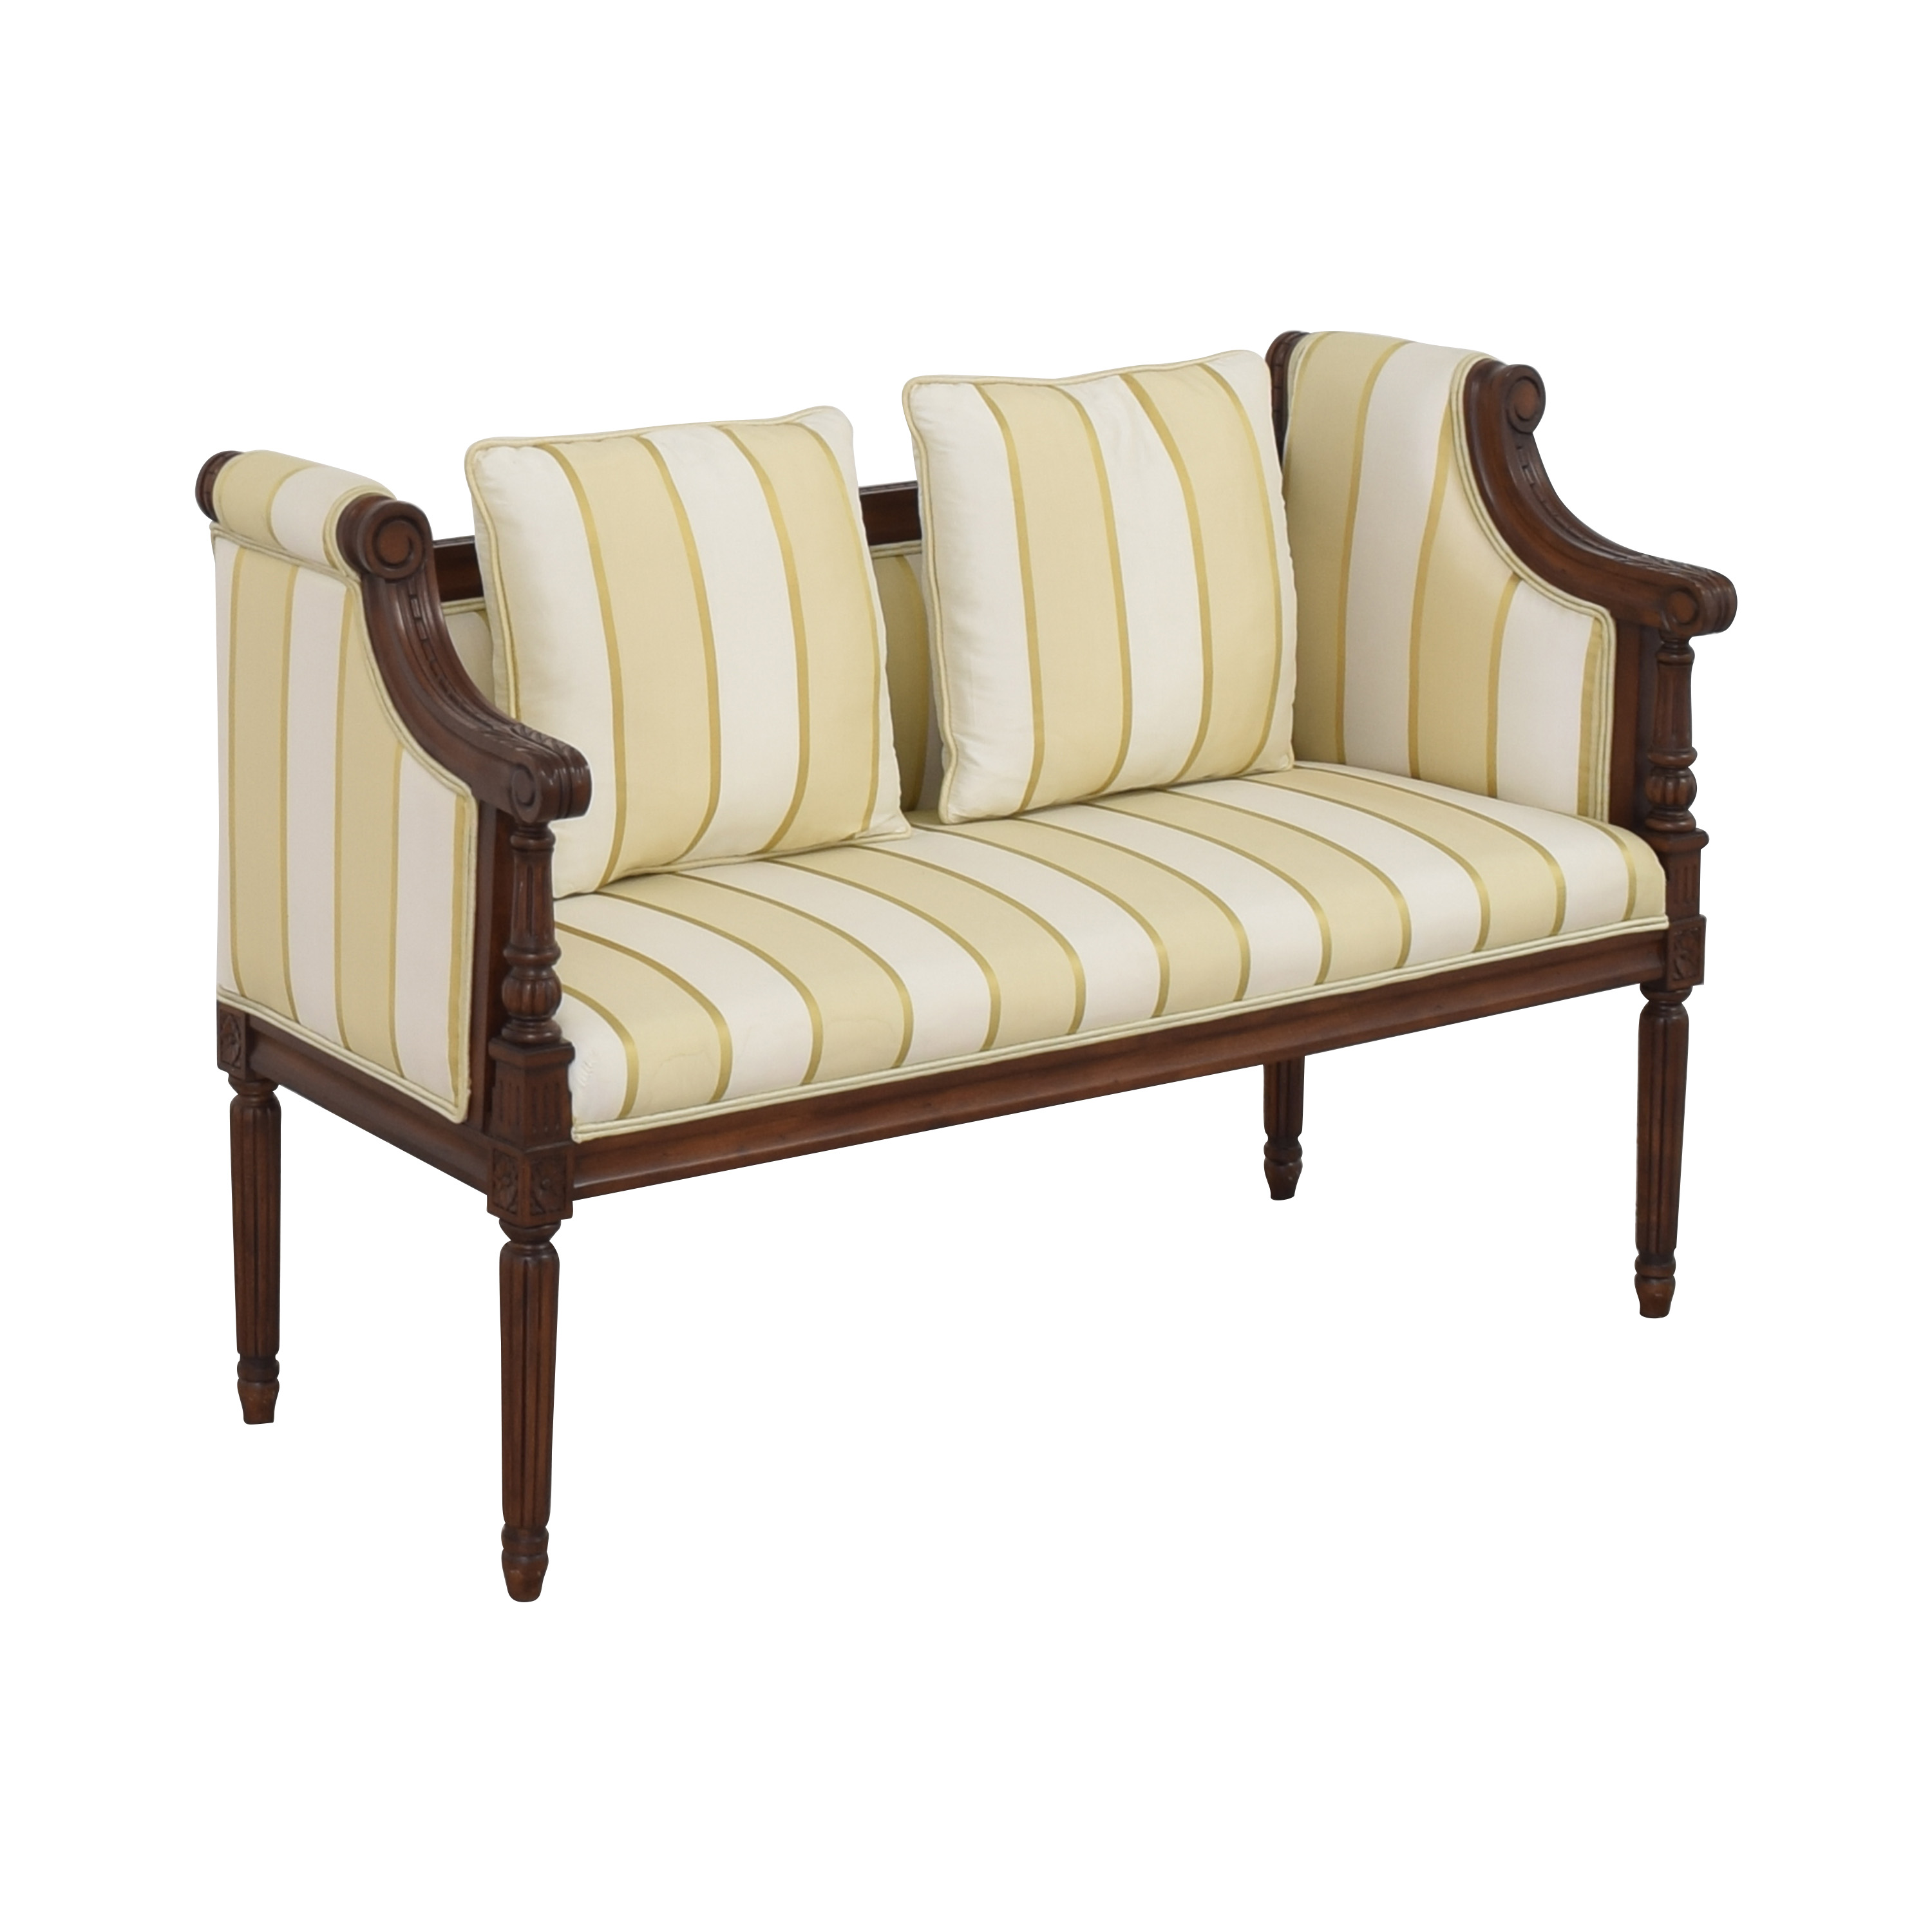 Upholstered Vintage Style Settee Chairs